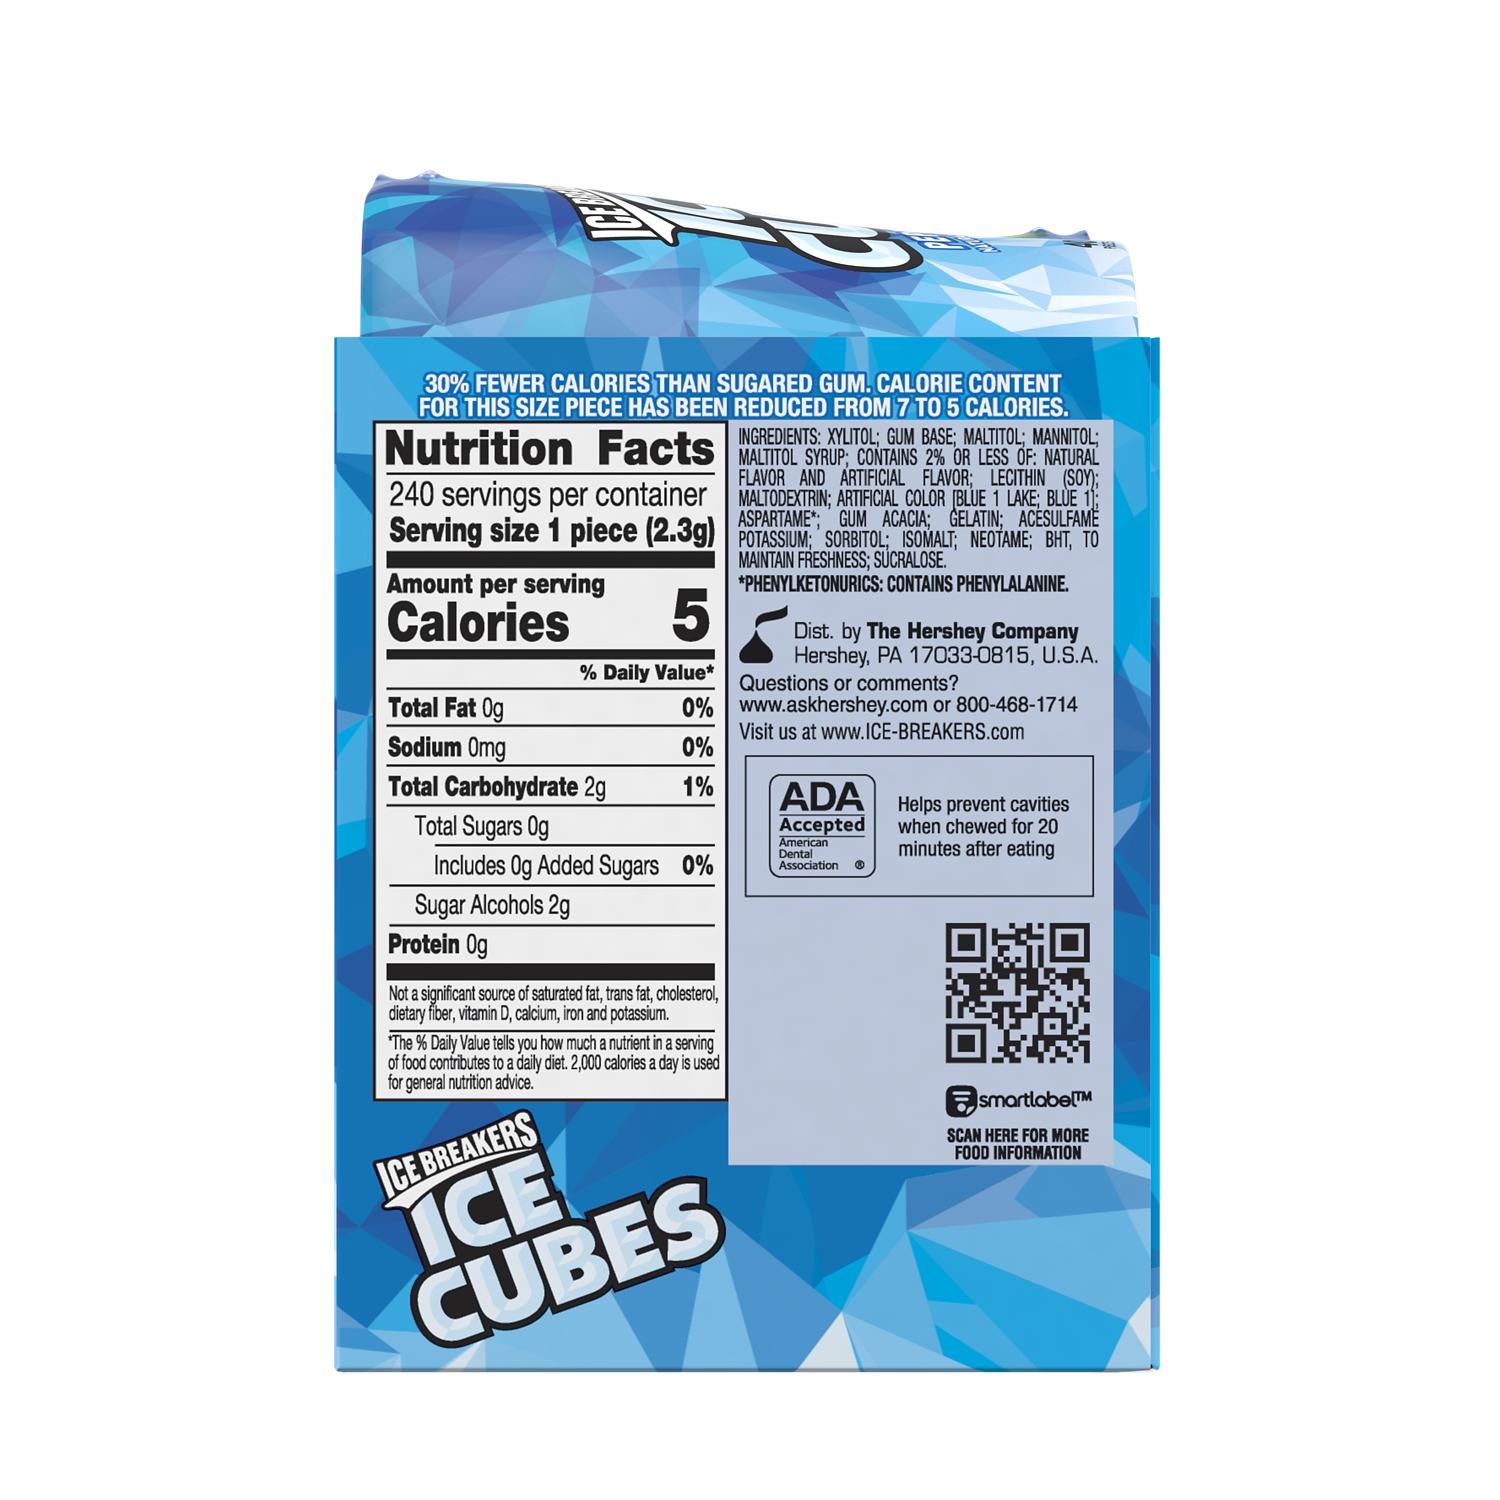 ICE BREAKERS ICE CUBES Peppermint Sugar Free Gum, 19.44 oz, 6 pack - Back of Package